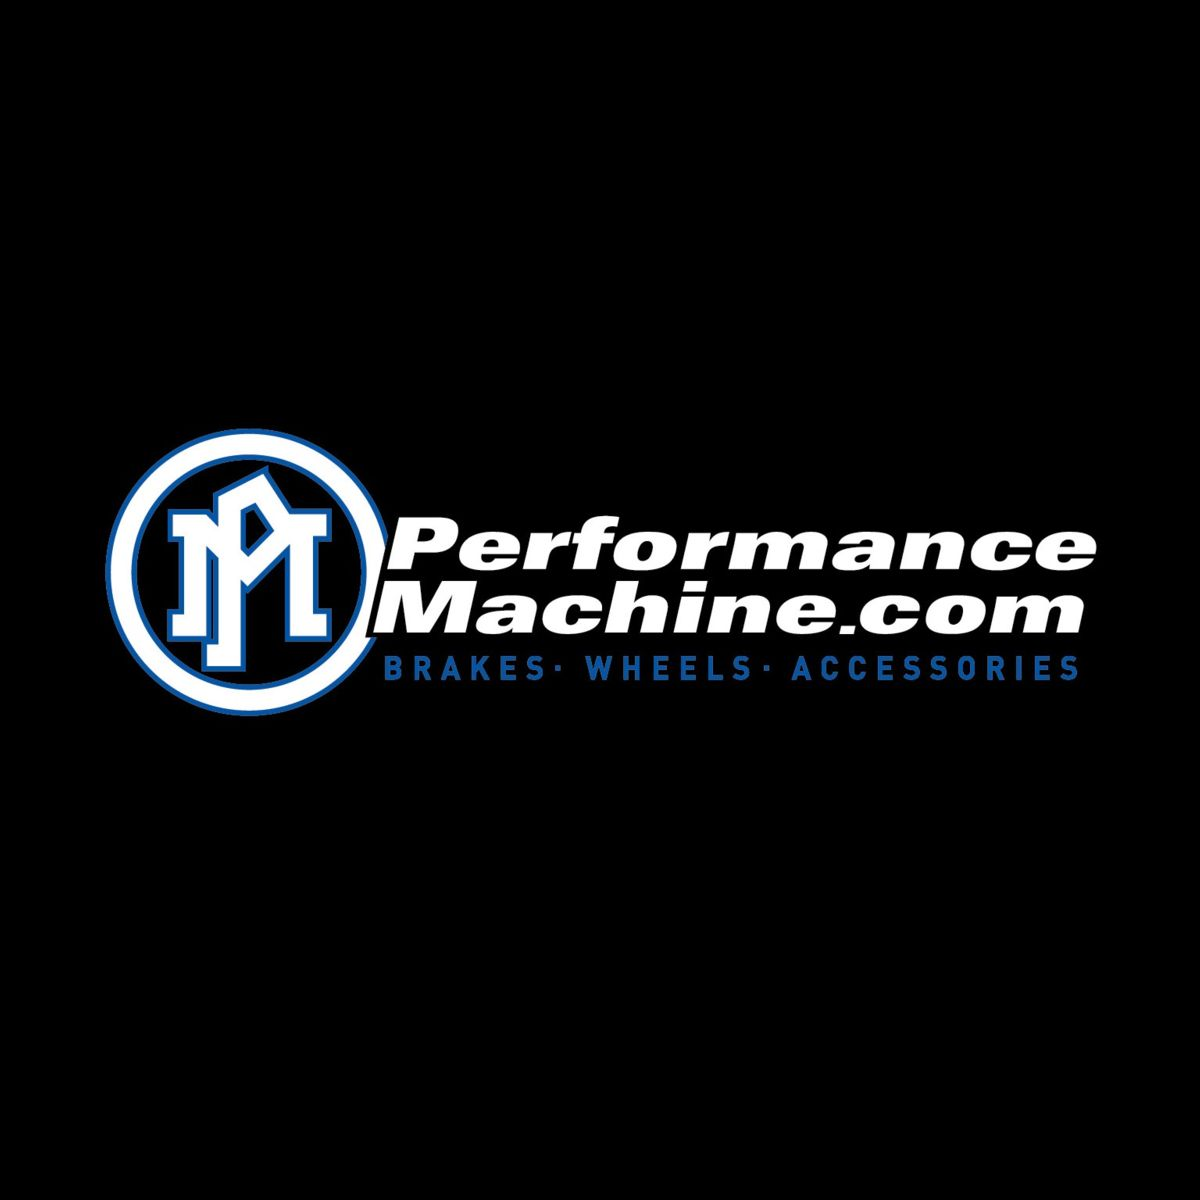 Performance Machine